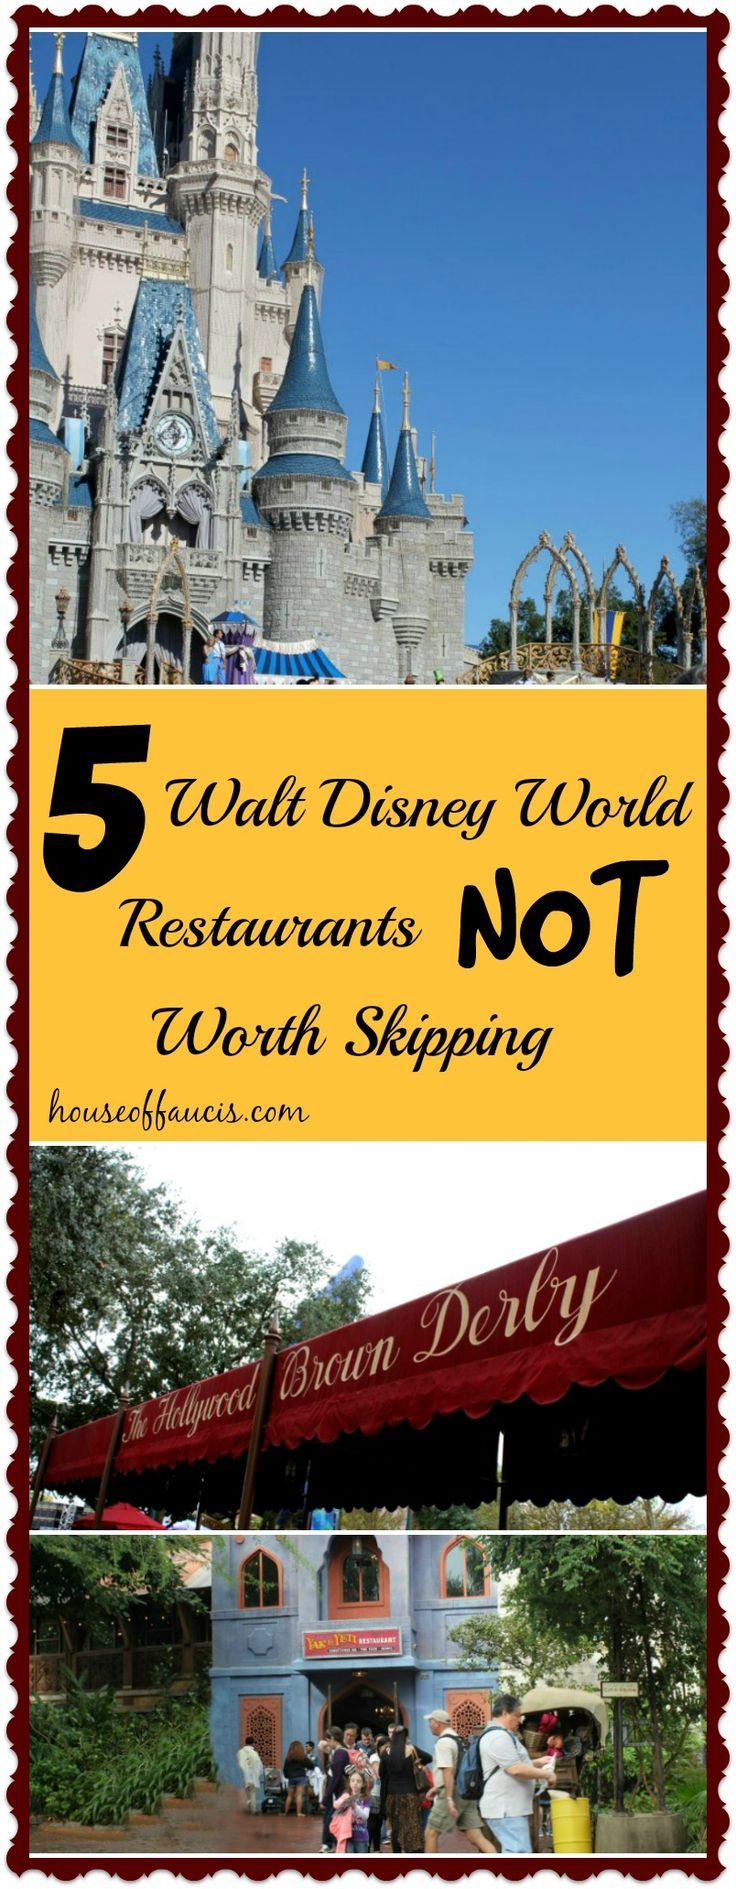 5 Walt Disney World Restaurants NOT Worth Skipping